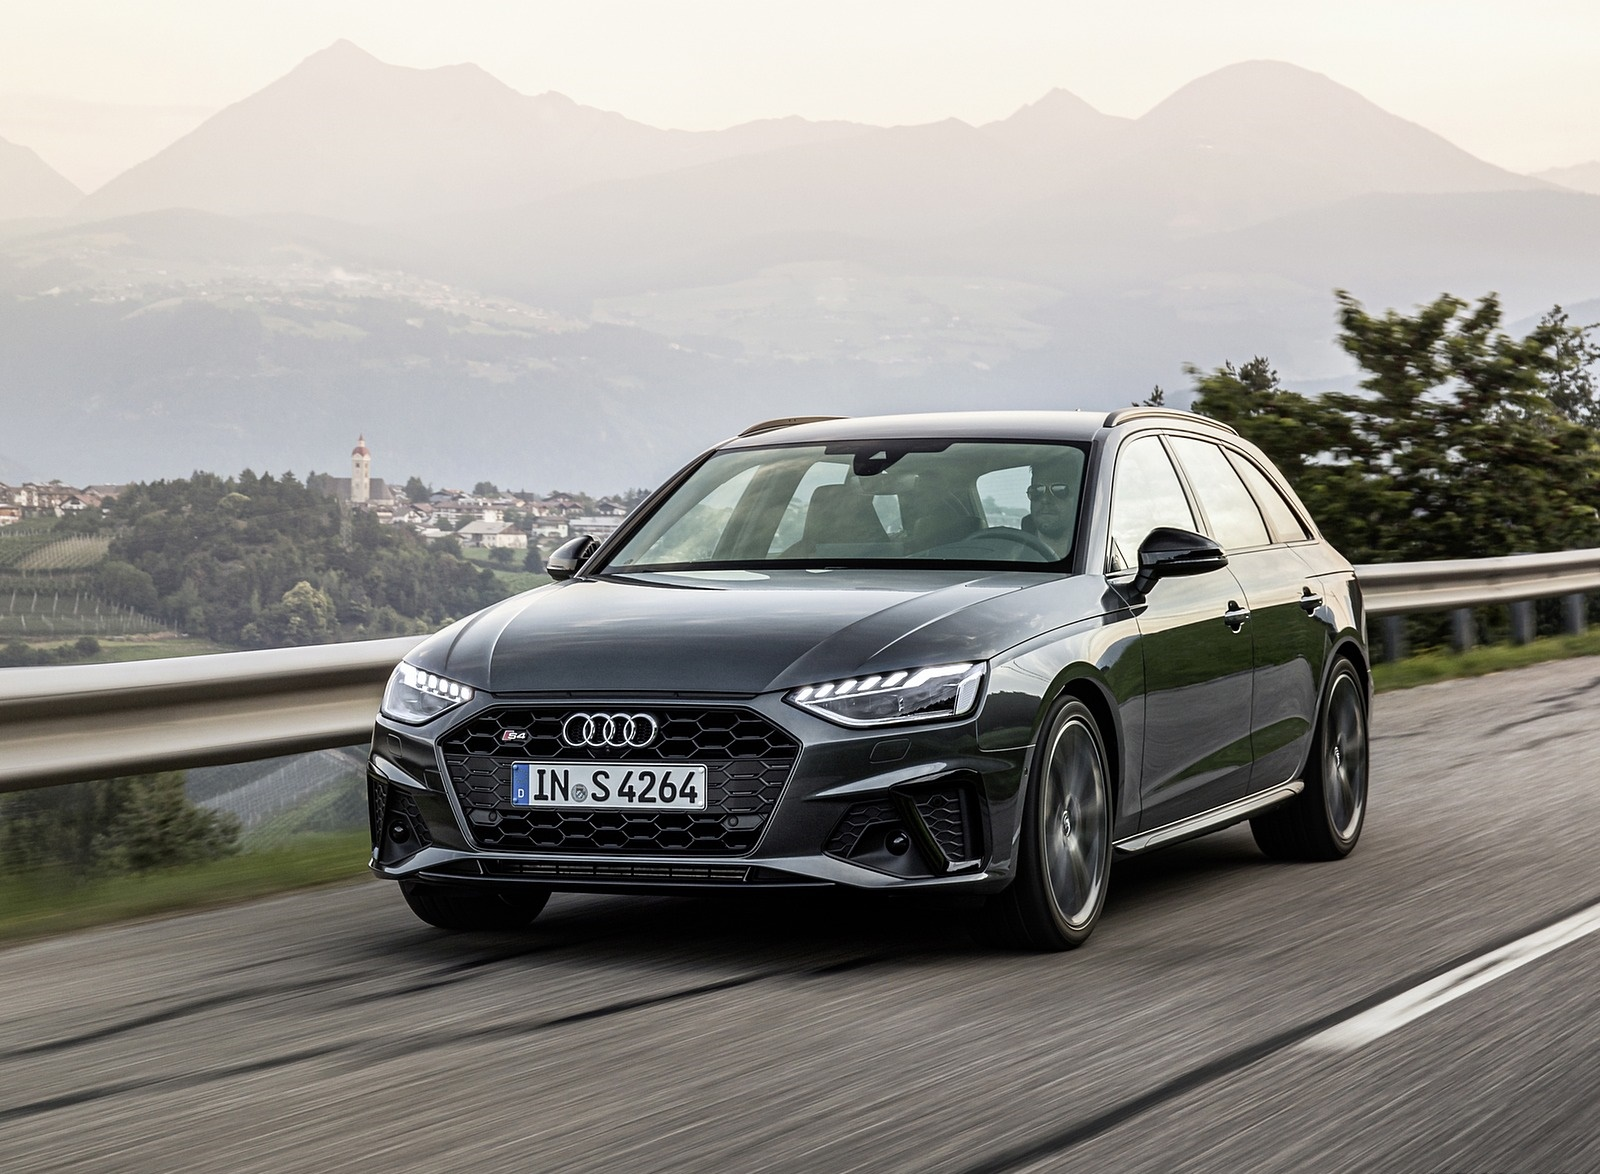 2019 Audi S4 Avant TDI (Color: Daytona Gray) Front Three-Quarter Wallpapers (1)